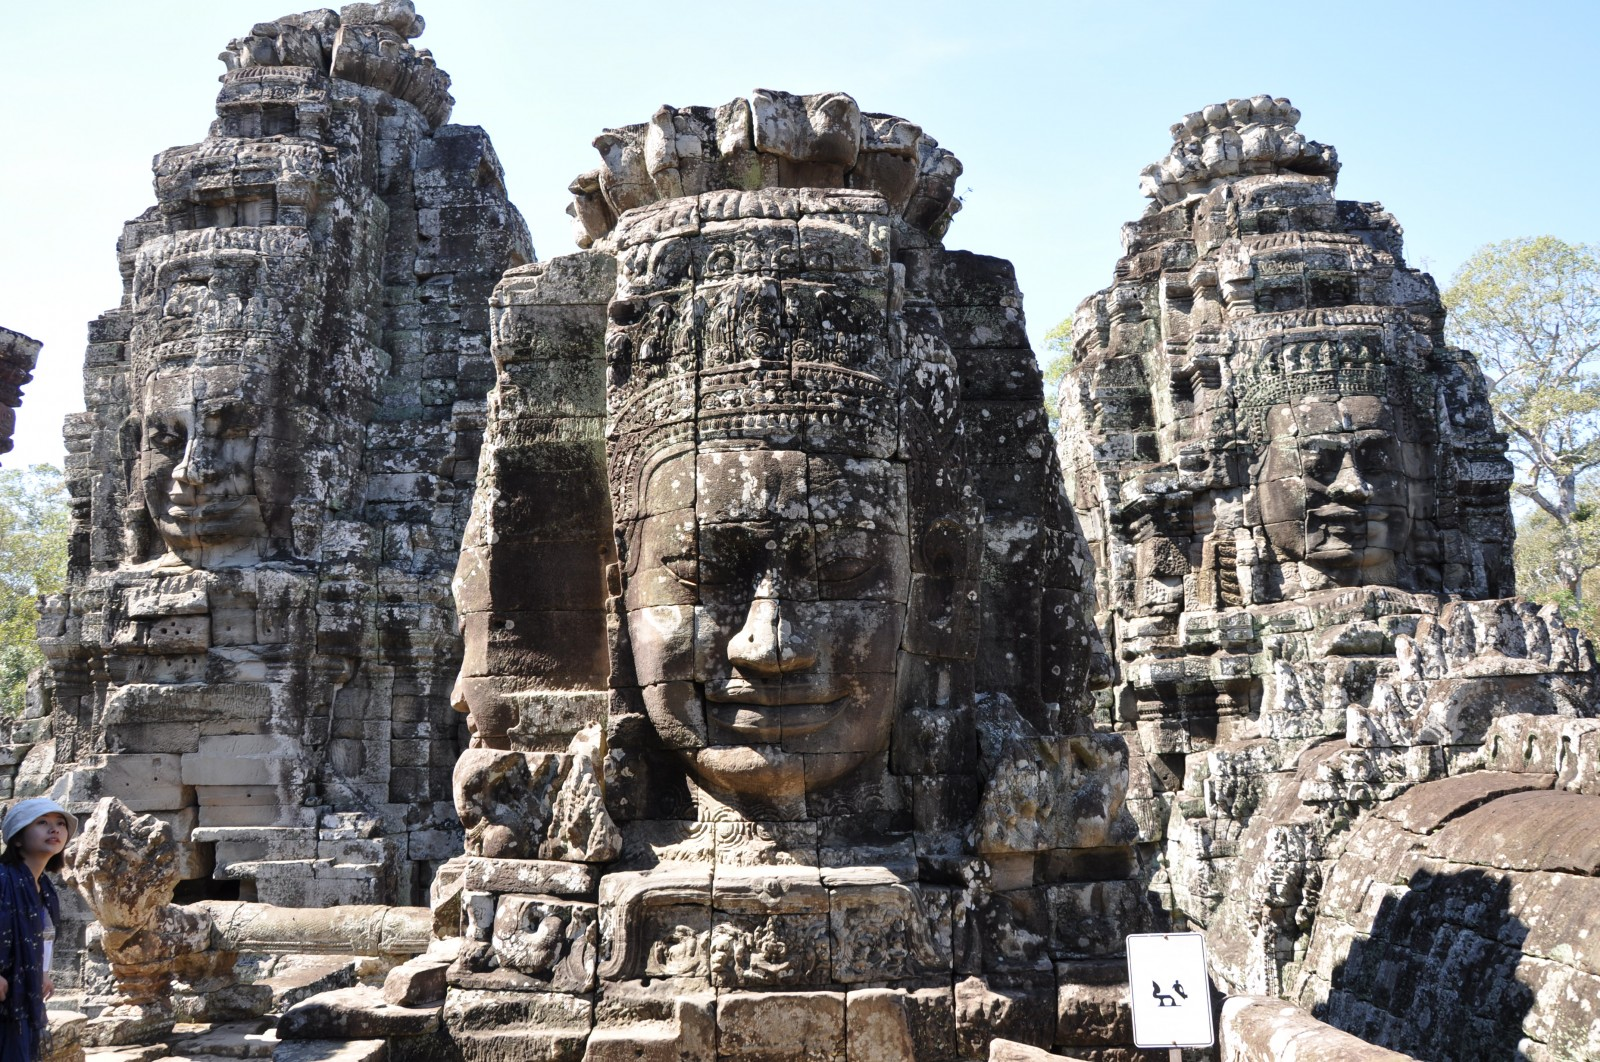 The faces which contain many suppositions in Bayon temple